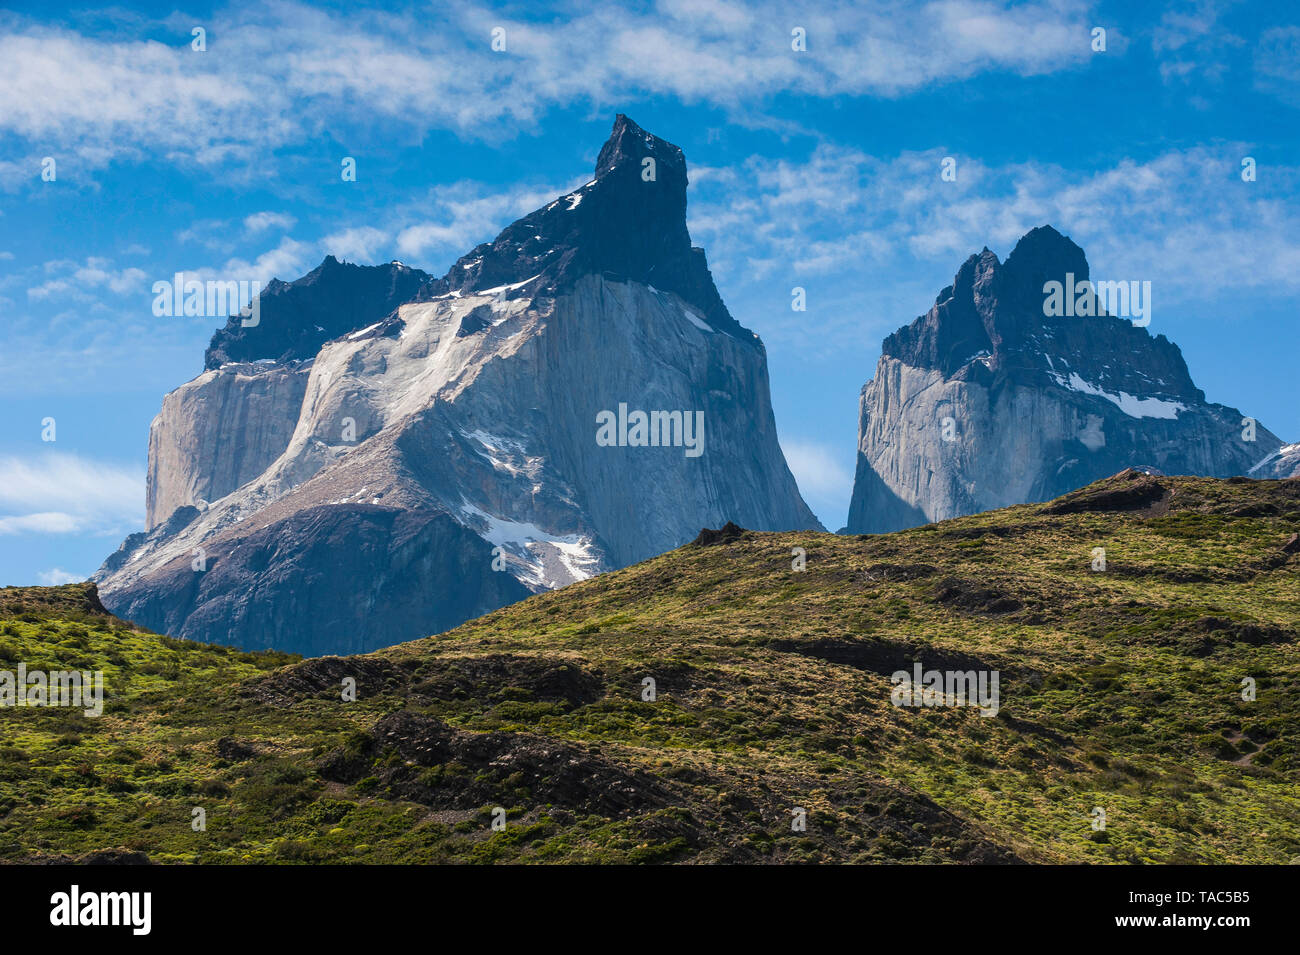 Chile, Patagonia, Torres del Paine National Park, mountainscape - Stock Image